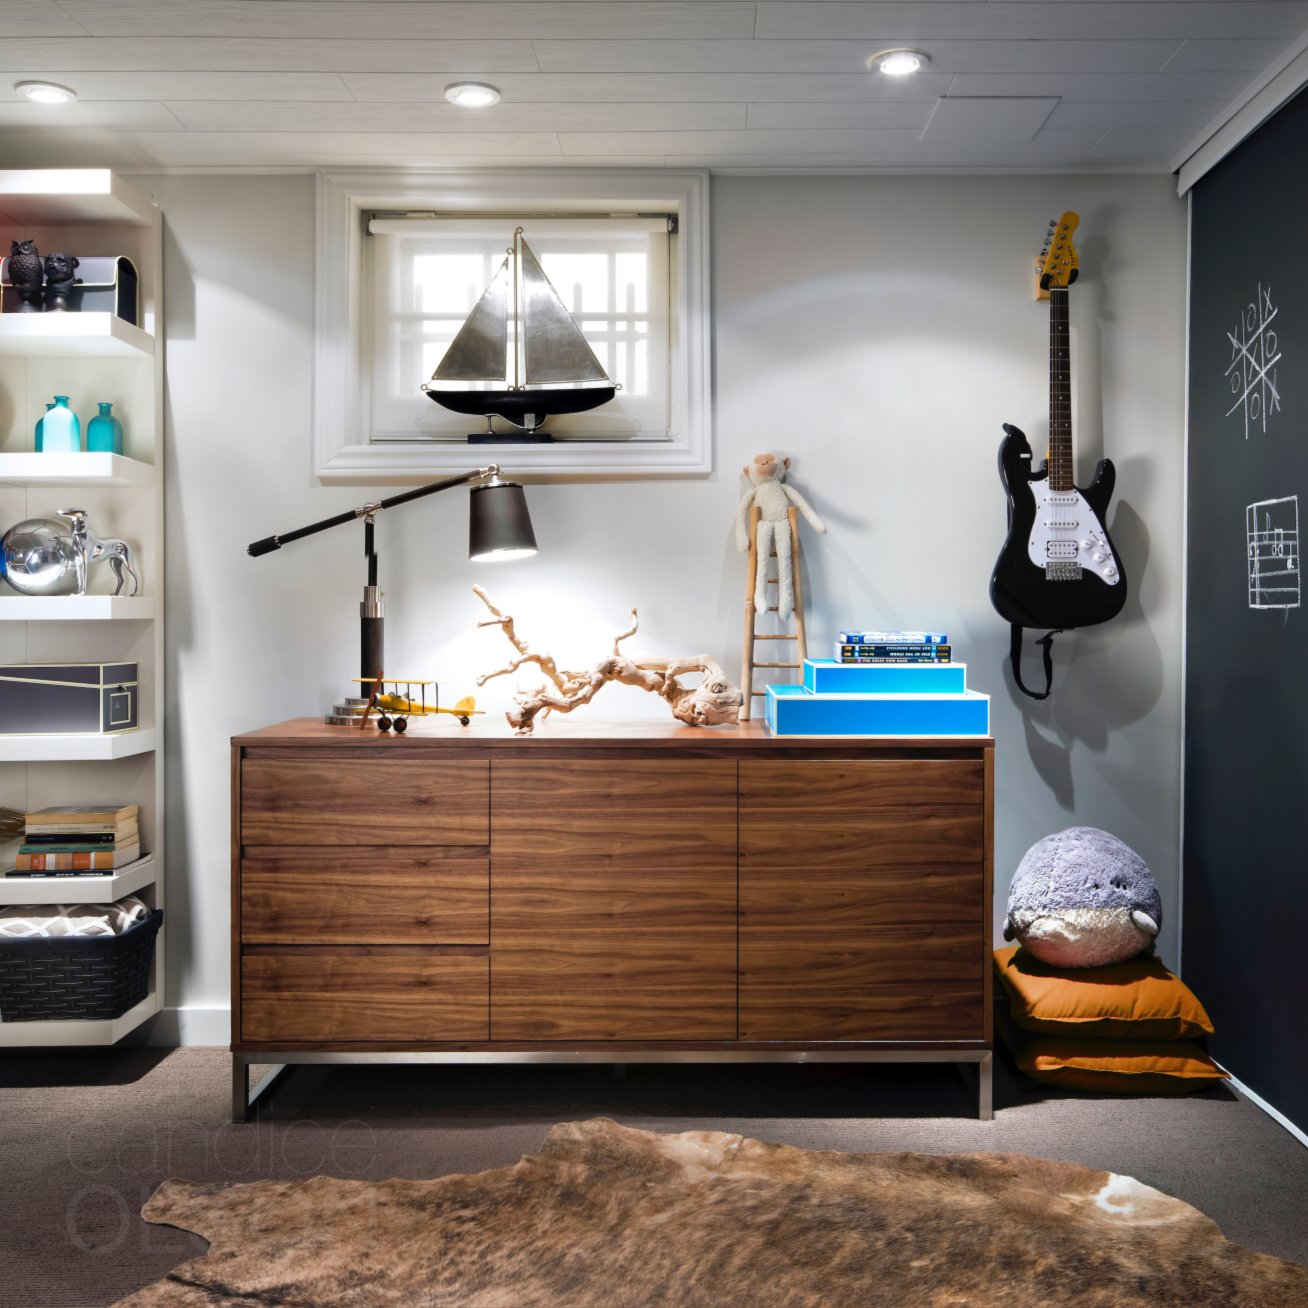 Candice Olson On Twitter No Matter What Age A Child S Space Should Be Comfortable And Inspire Creativity Basementdesign Bedroomdesign